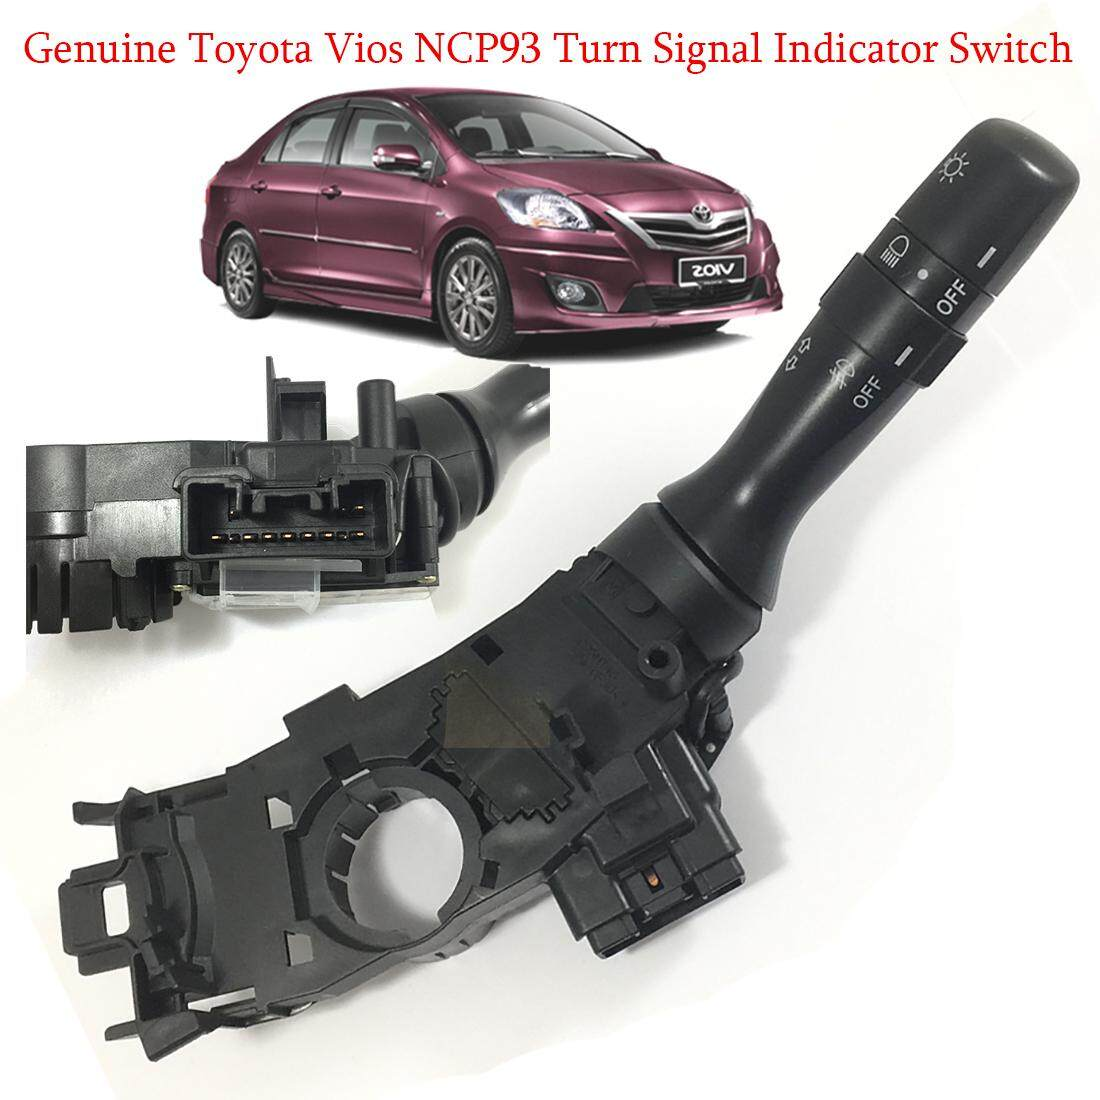 Toyota Products Accessories For The Best Prices In Malaysia 1997 Camry Fuel Filter Location Genuine Vios Ncp93 2007 2014 Turn Signal Indicator Switch